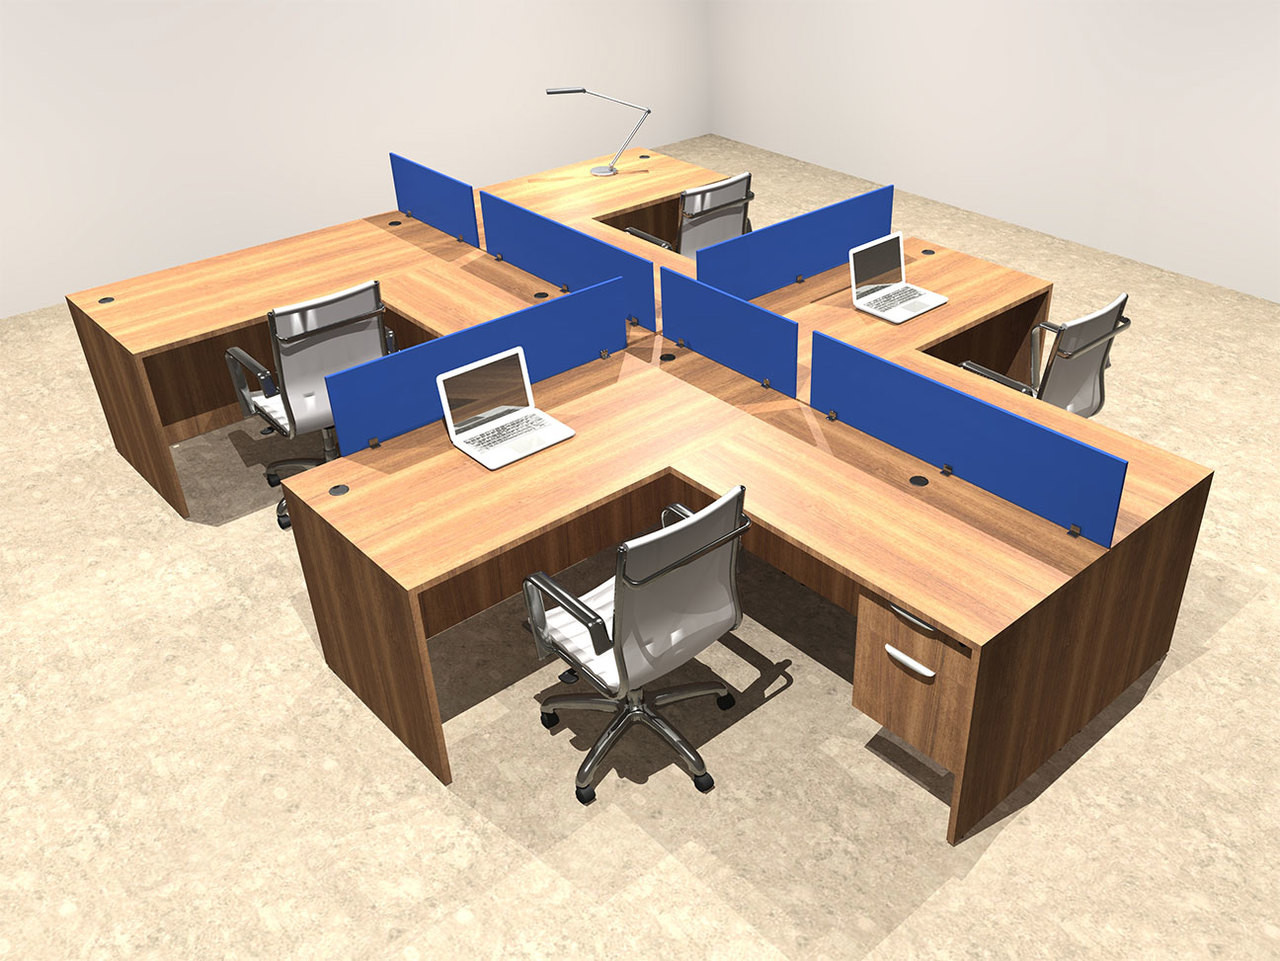 Four Person Blue Divider Office Workstation Desk Set, #OT-SUL-SPB57